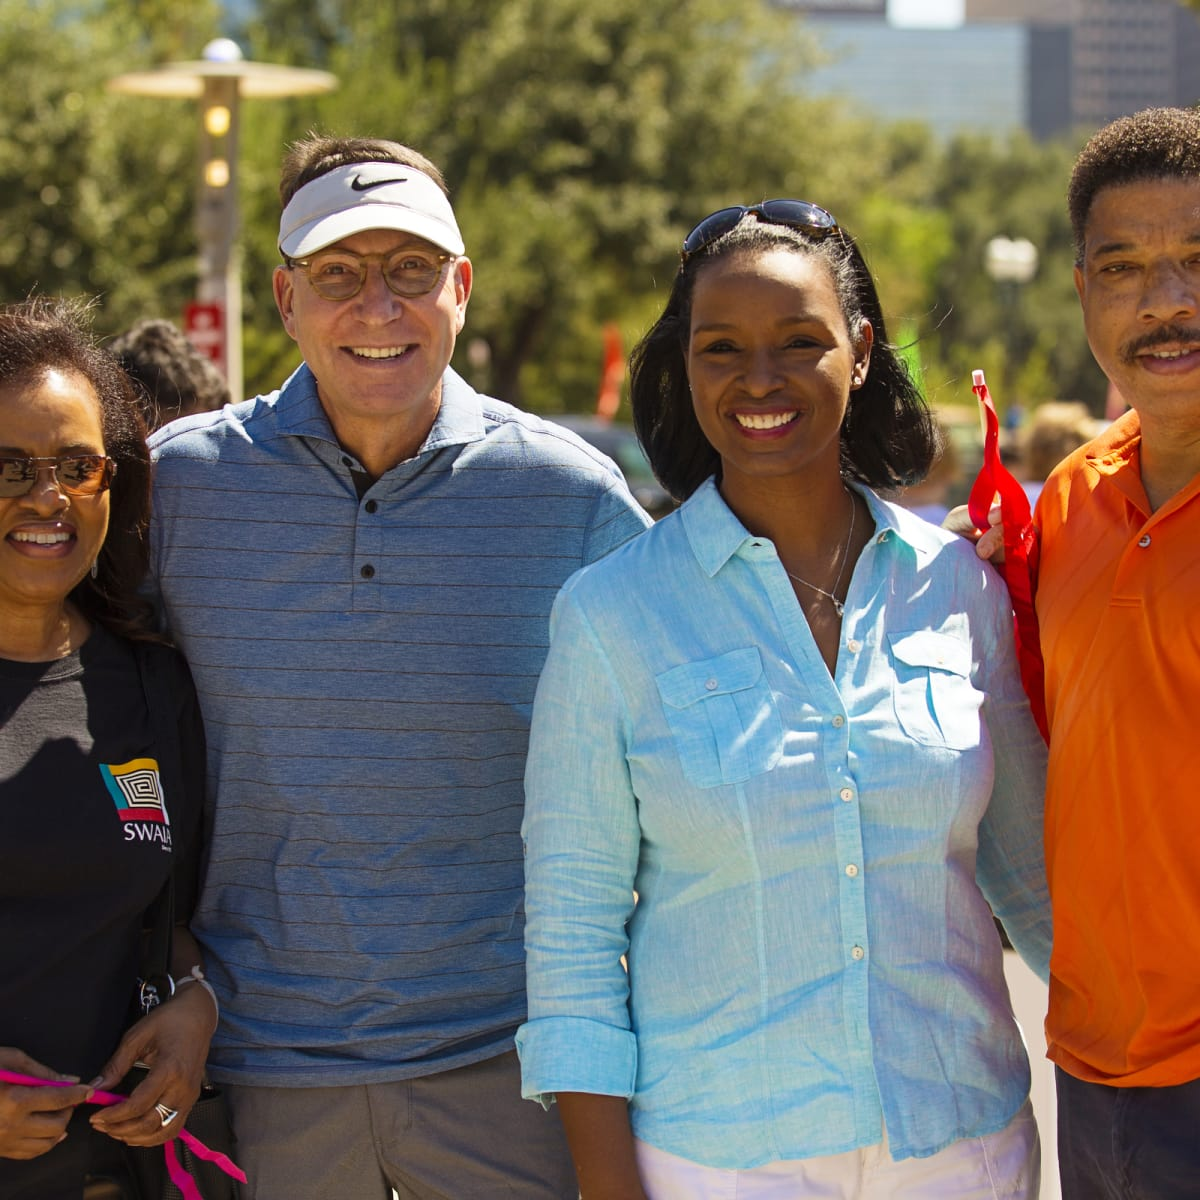 News, Shelby, Buffalo Bayou Park opening, Oct. 2015, Denise Bates, Scott McClelland, Winell Herron, Doug Herron